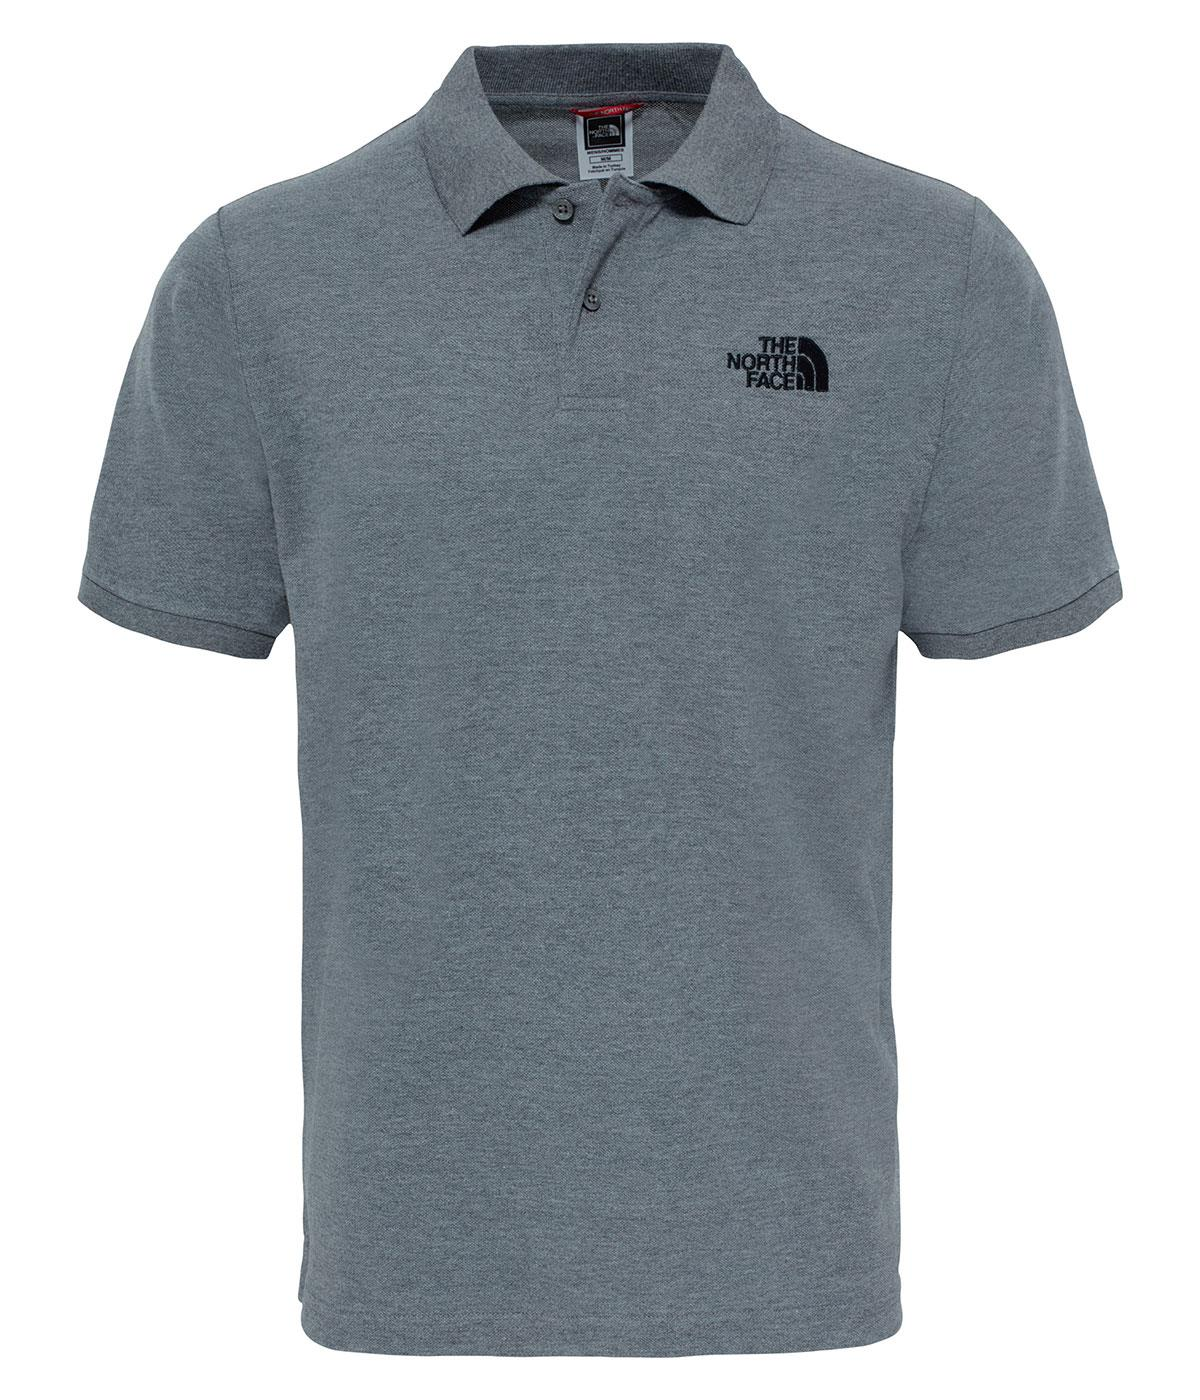 The Northface Erkek POLO PIQUET NF00CG71LXS1